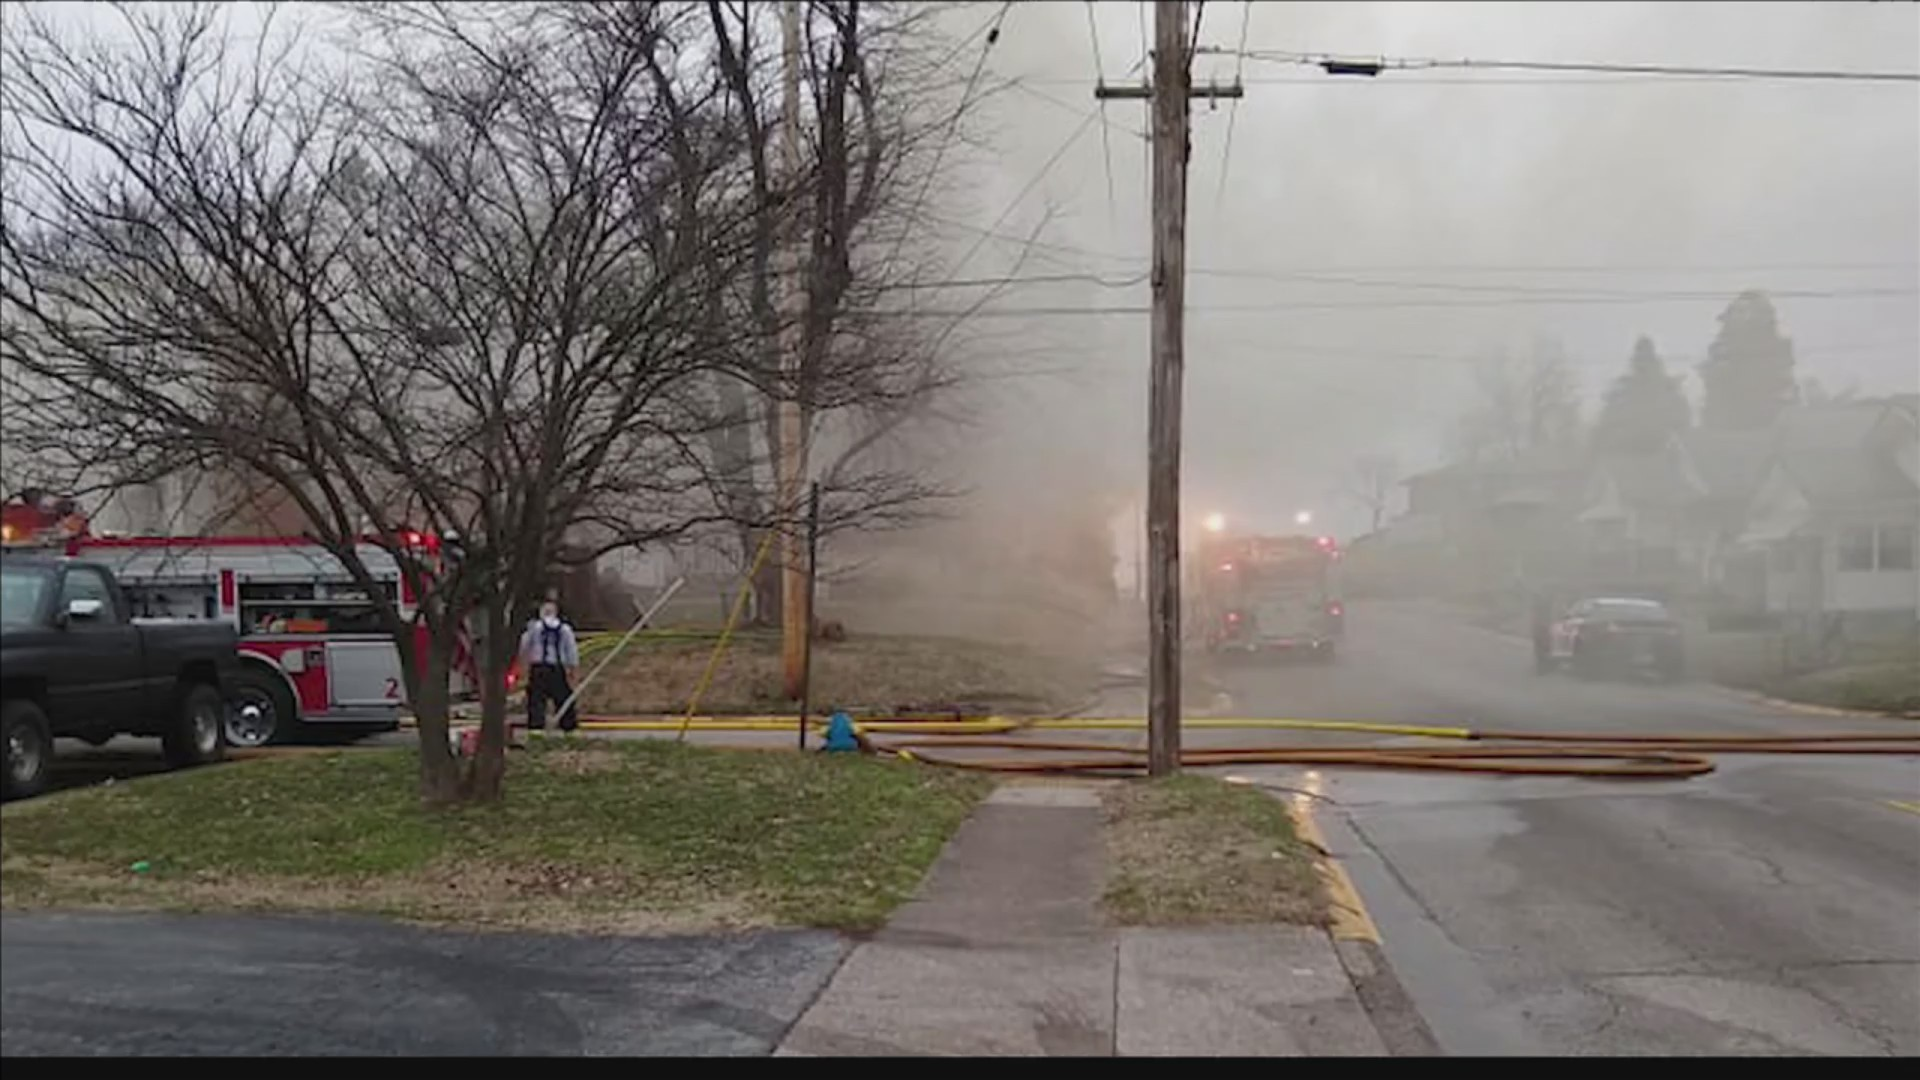 Firefighters battle a house fire on Sunday in Owensboro